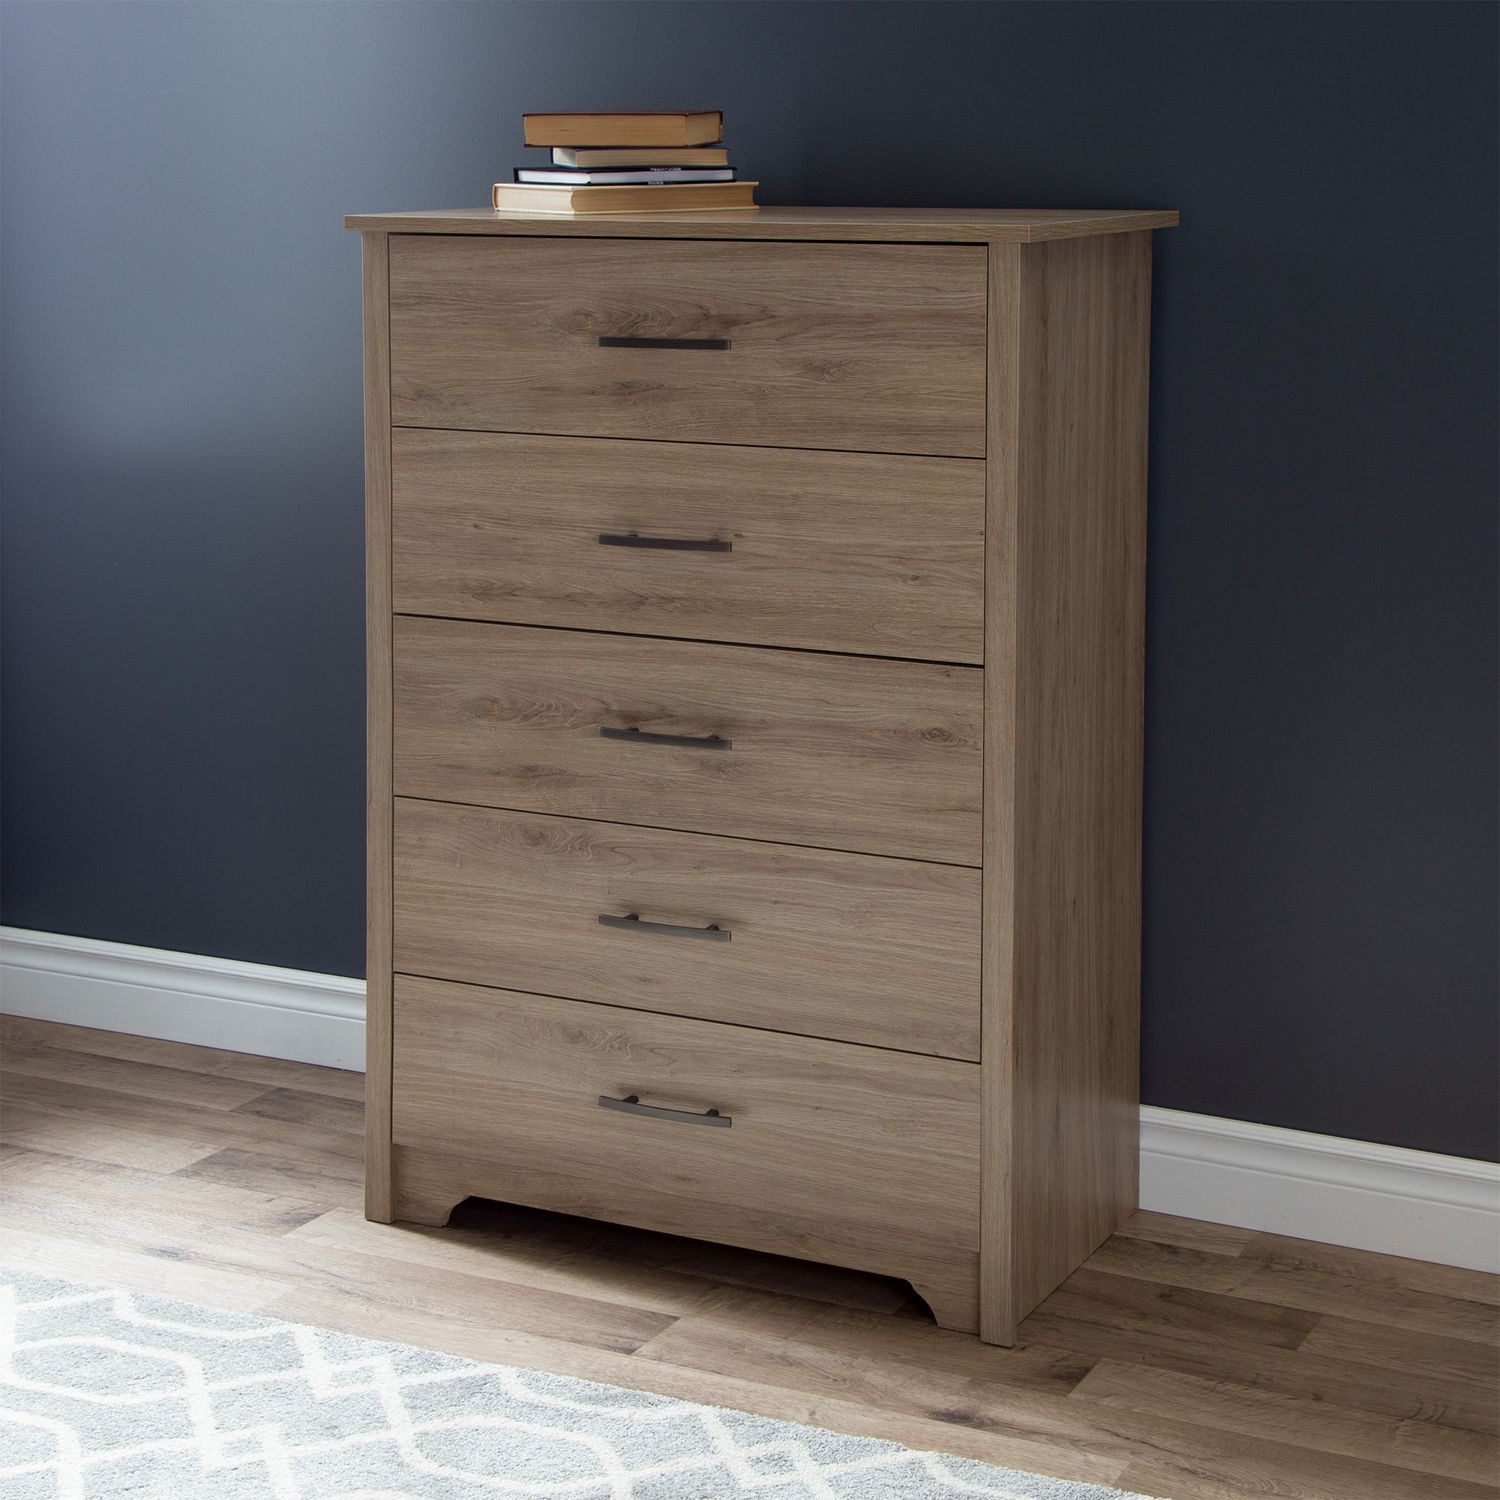 South Shore Fusion 5 Drawer Chest Walmart Canada